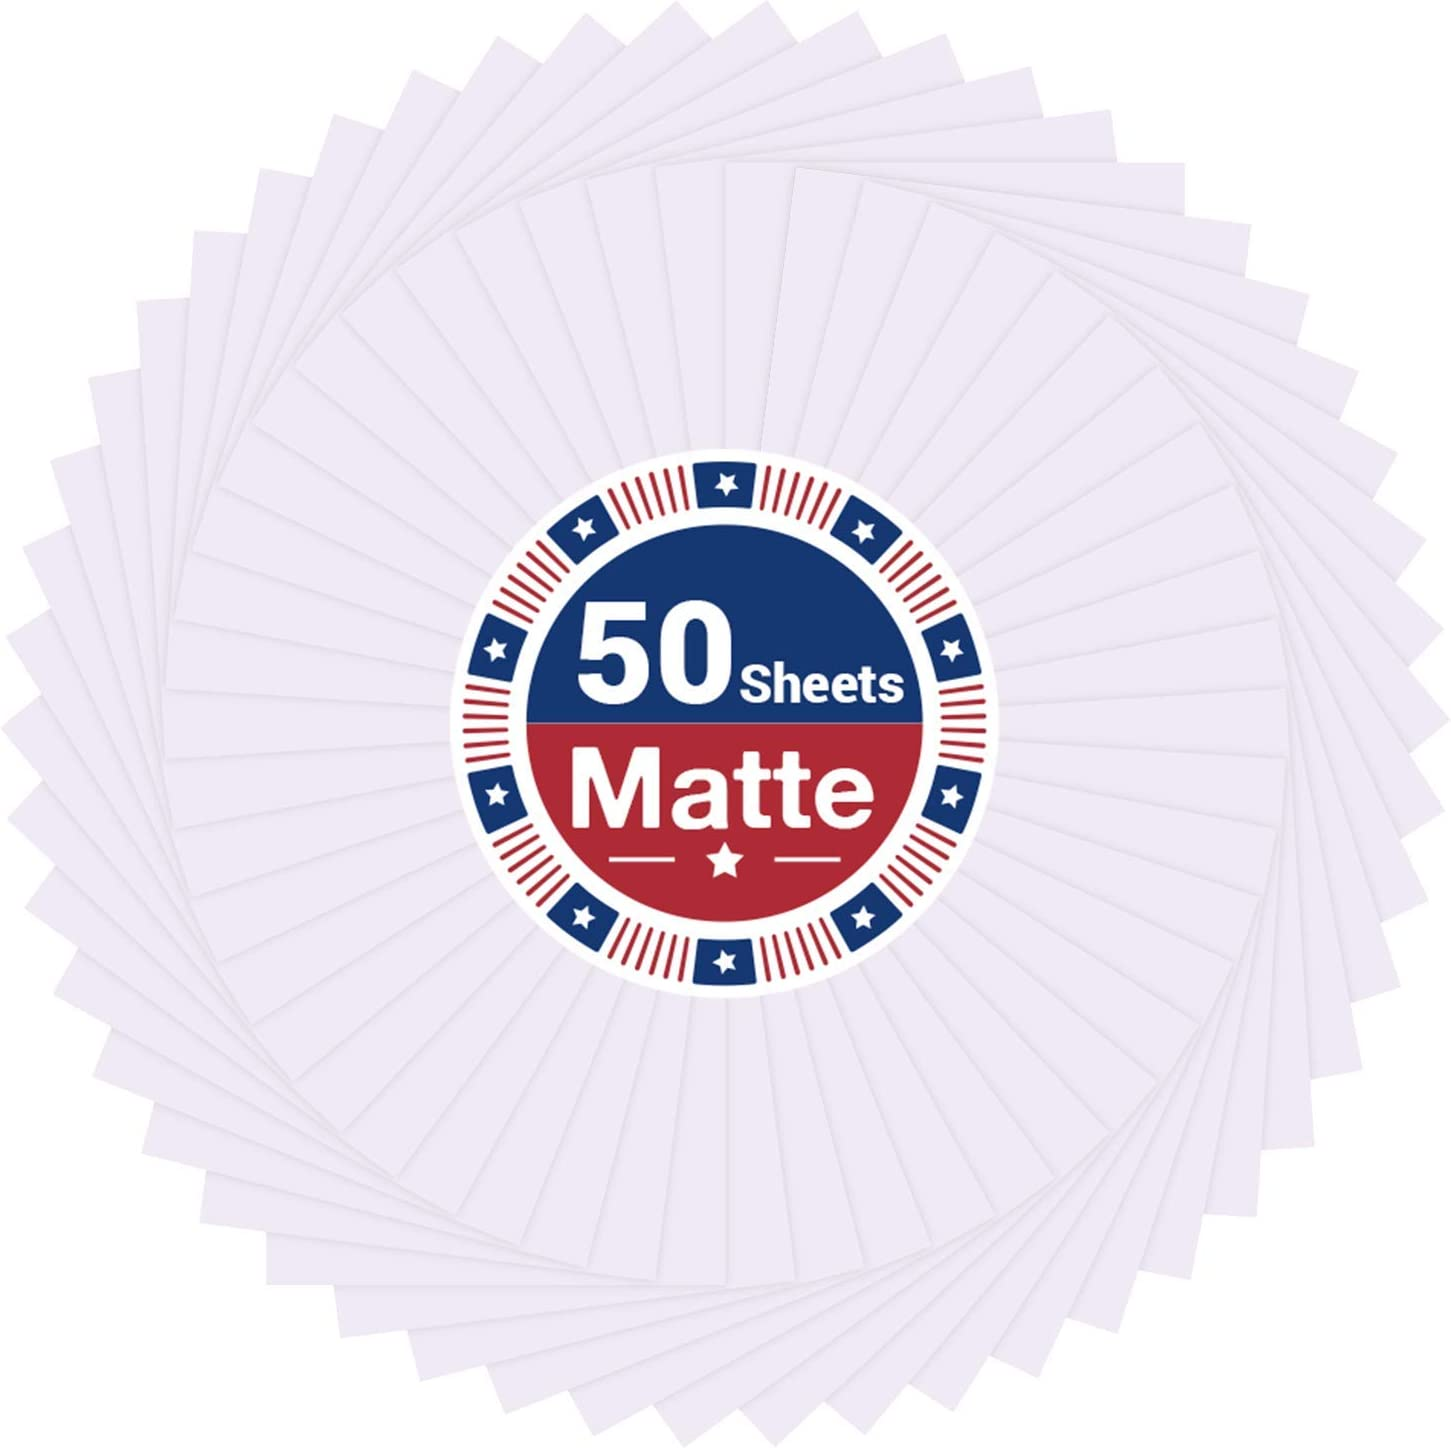 Printable Vinyl Sticker Paper for Price reduction Inkjet Free shipping / New - 50 Printer and Laser